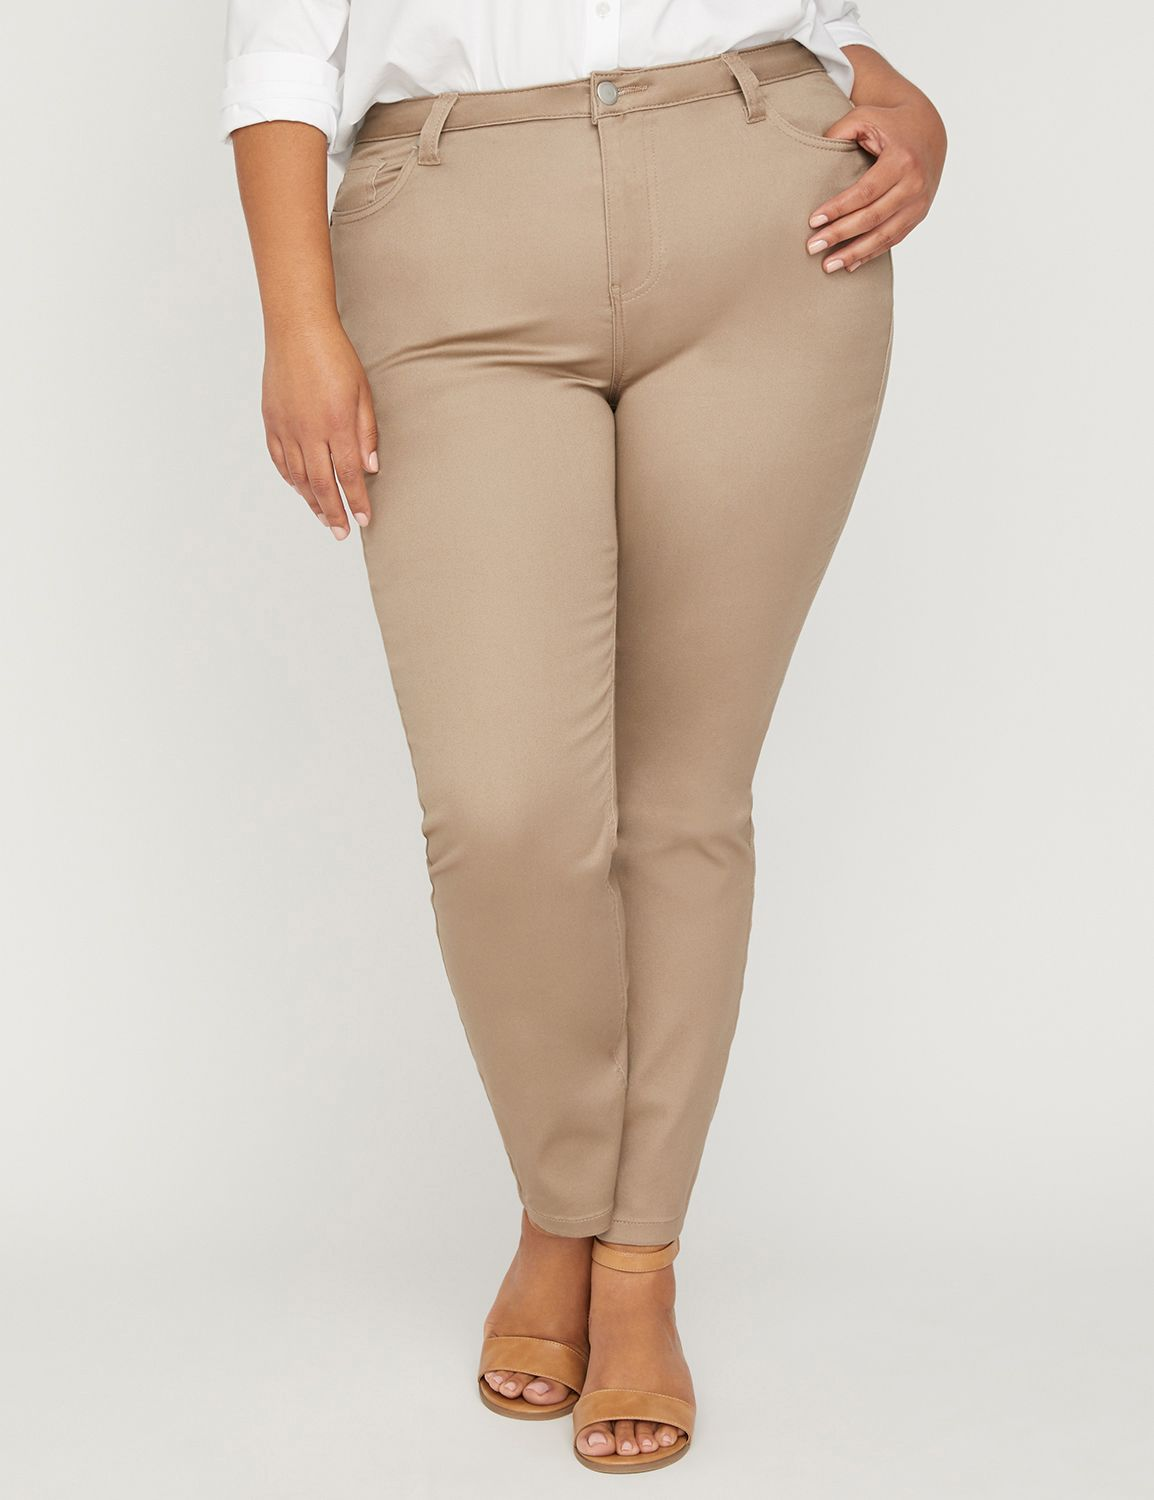 Modern Sateen Stretch Pant Done MP-300083771